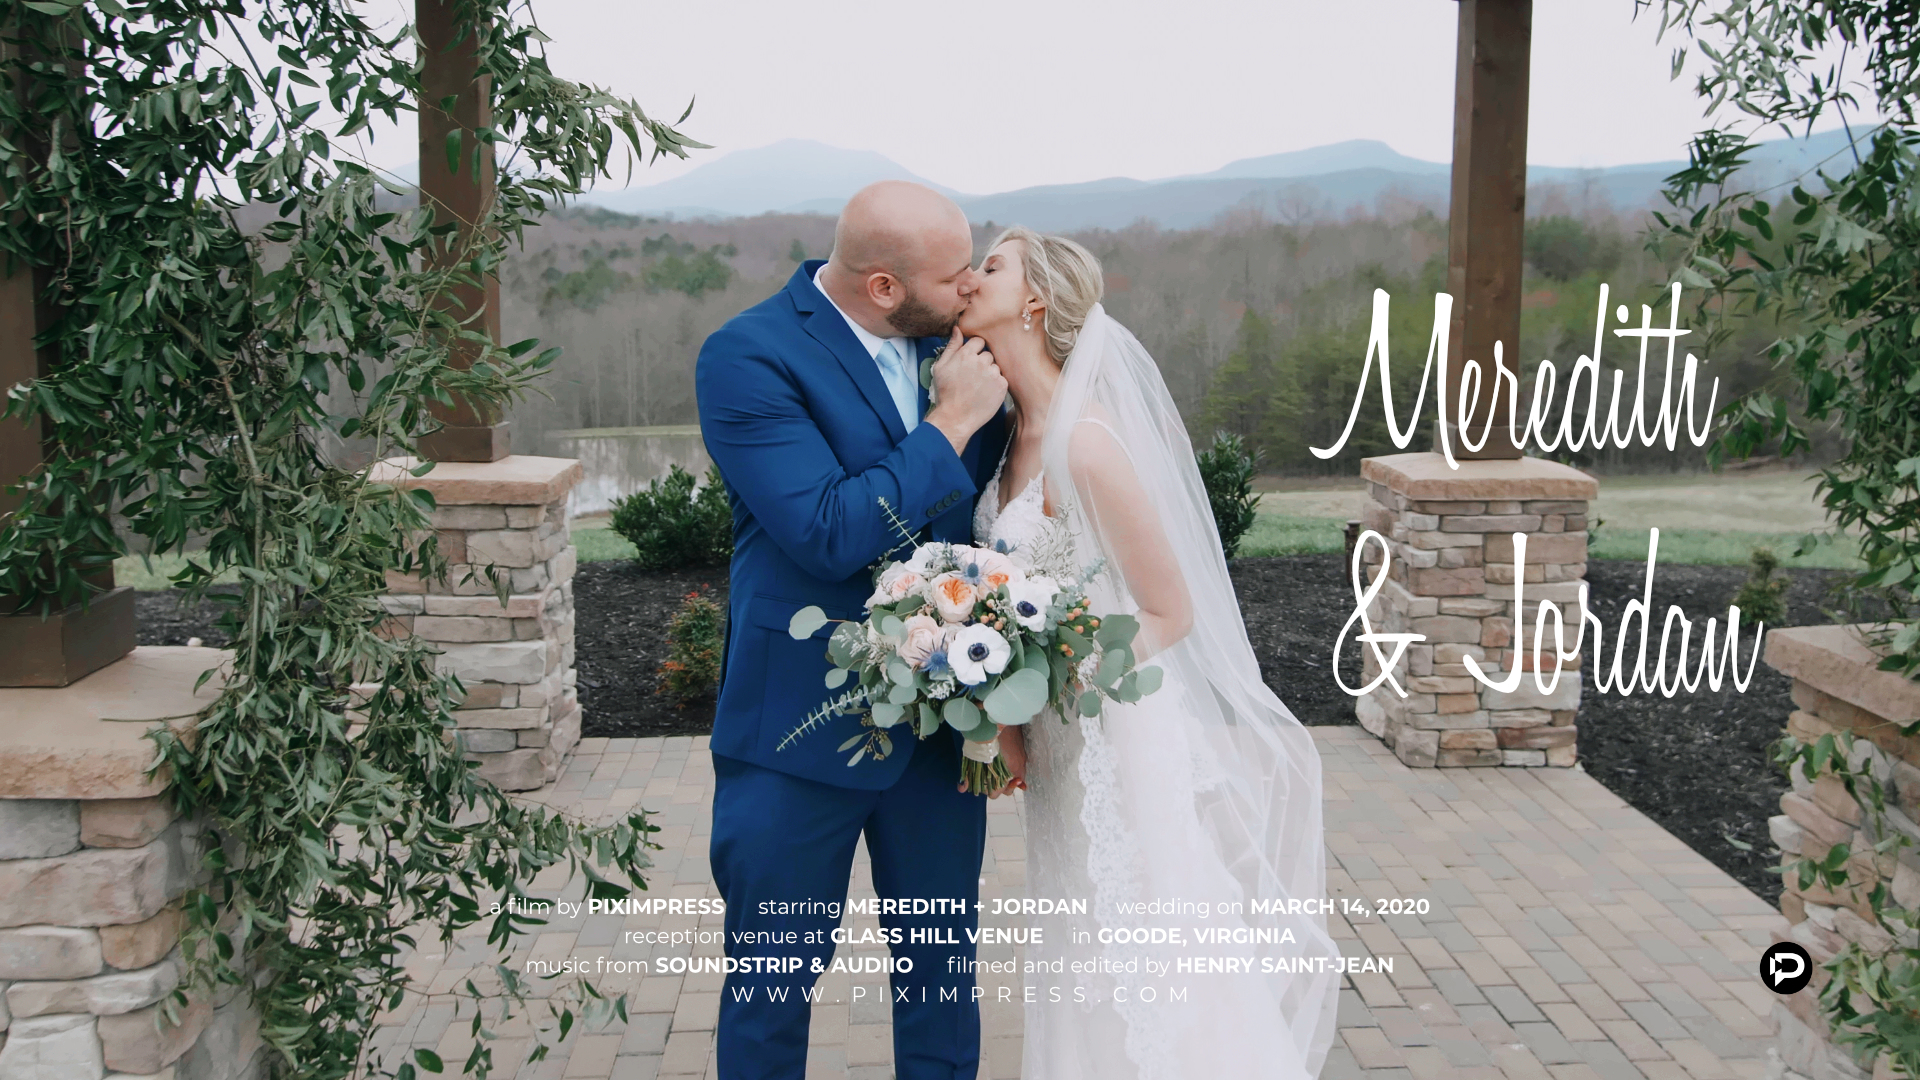 Meredith + Jordan | Goode, Virginia | Glass Hill Venue